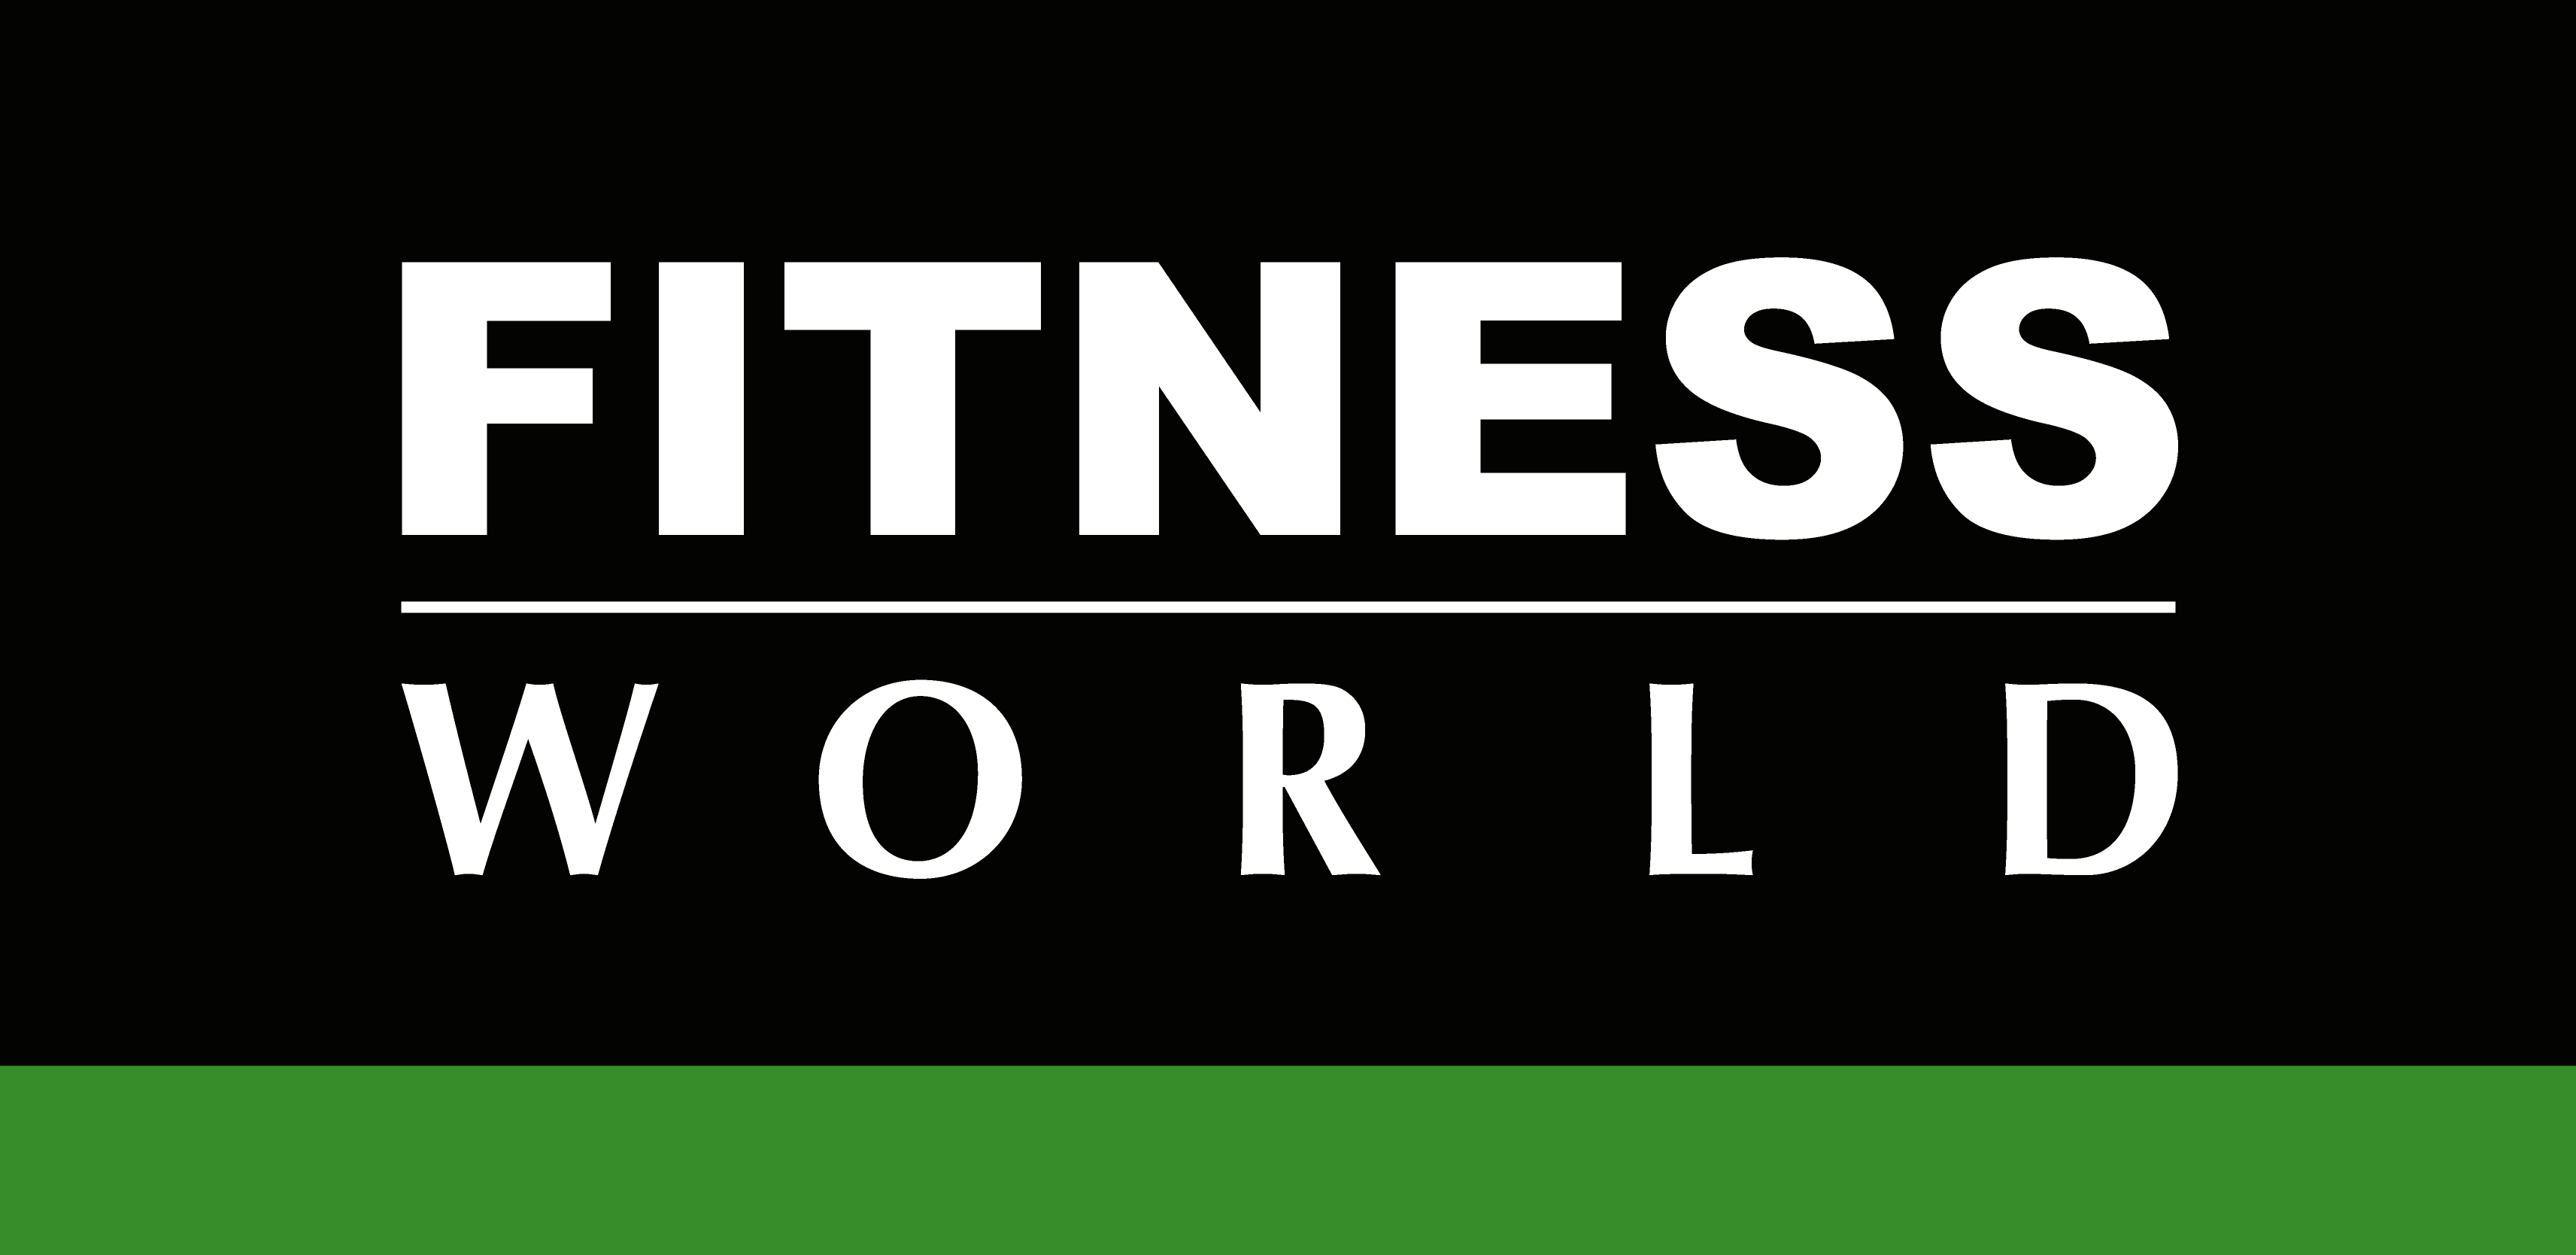 https://www.fitnessworld.com/pl/